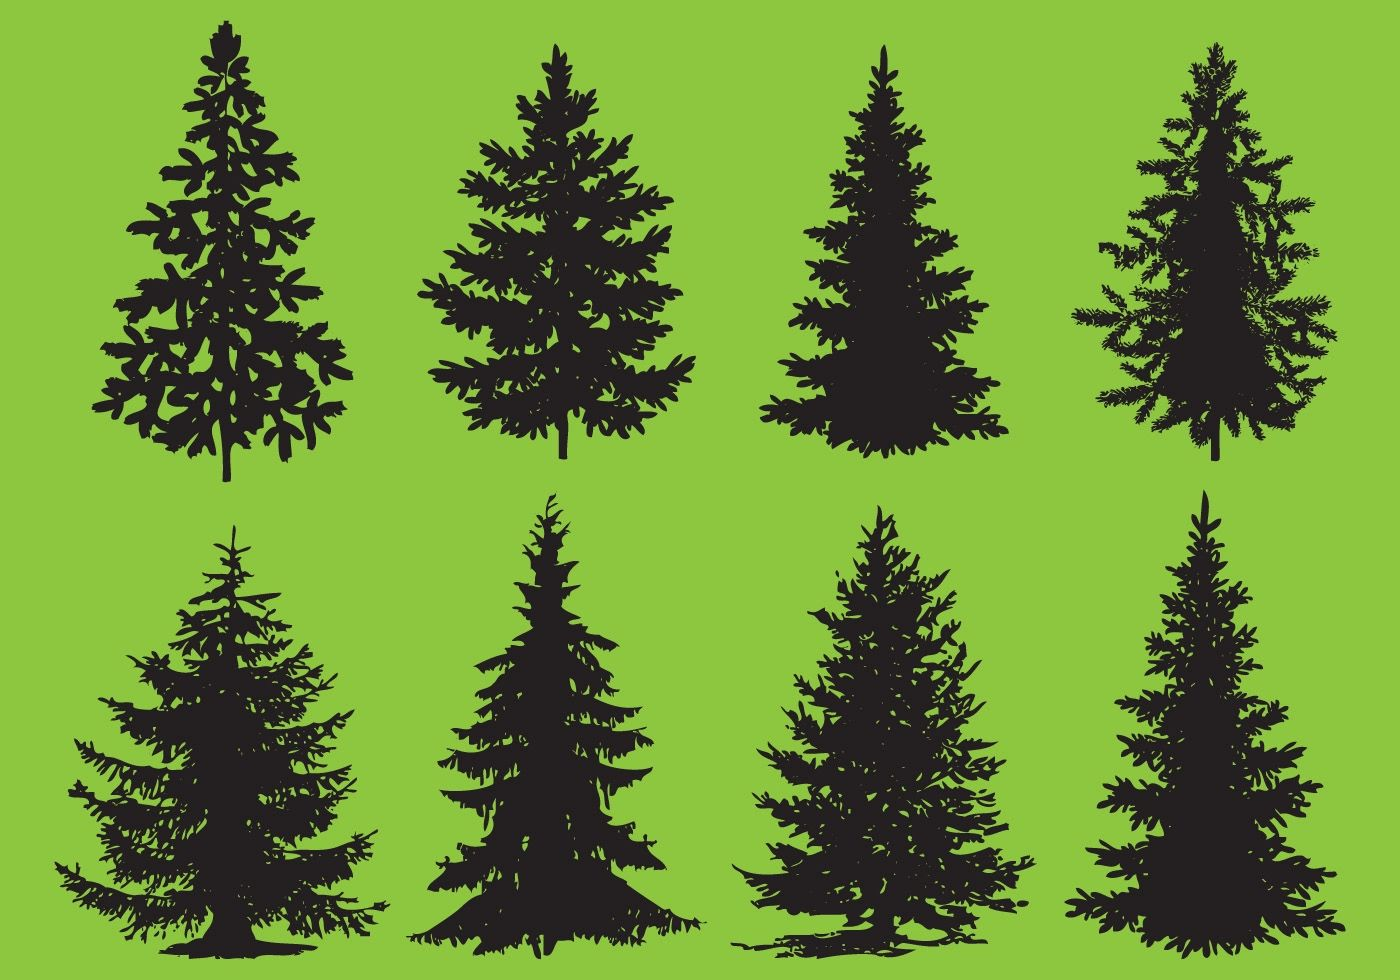 Christmas tree vector image royalty free stock image image 34973066 - Christmas Tree Vector Image Royalty Free Stock Image Image 34973066 Pine Tree Vectors Download Free Download